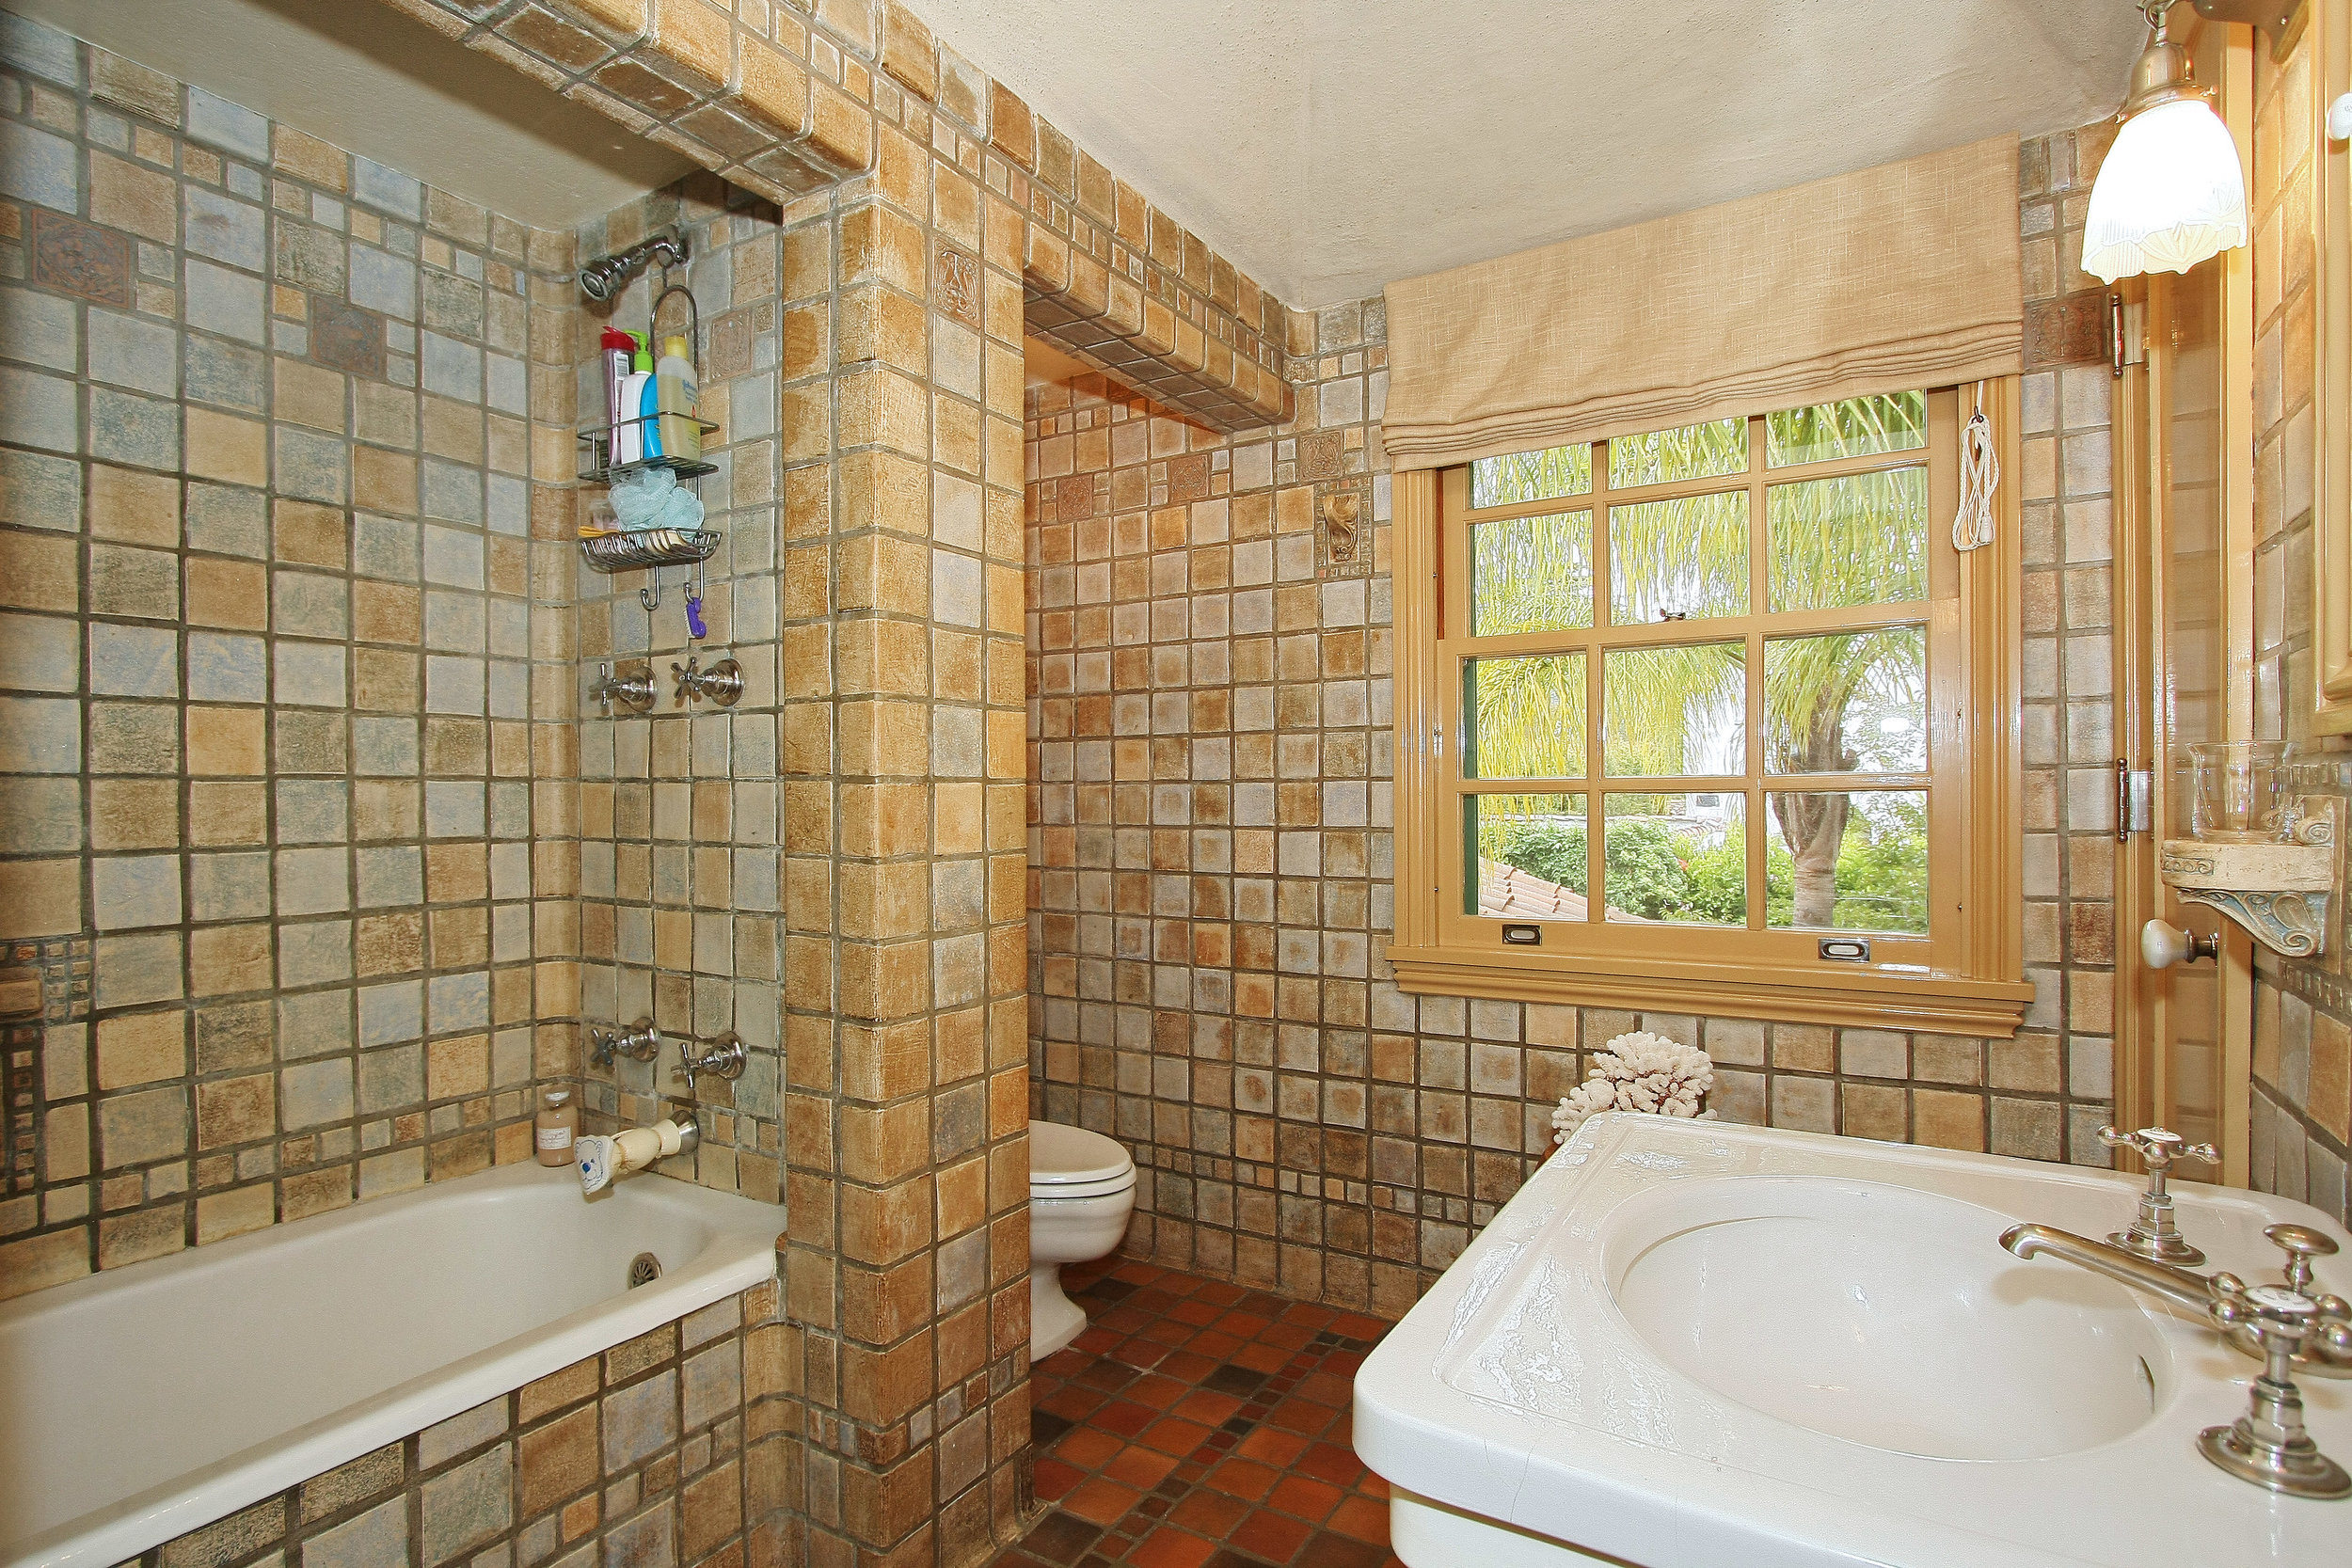 The master bathroom had the original floor to ceiling Batchelder tile including some rare decorative tiles. The coved ceiling has a special sanded plaster finish. The fixtures are new but look vintage.